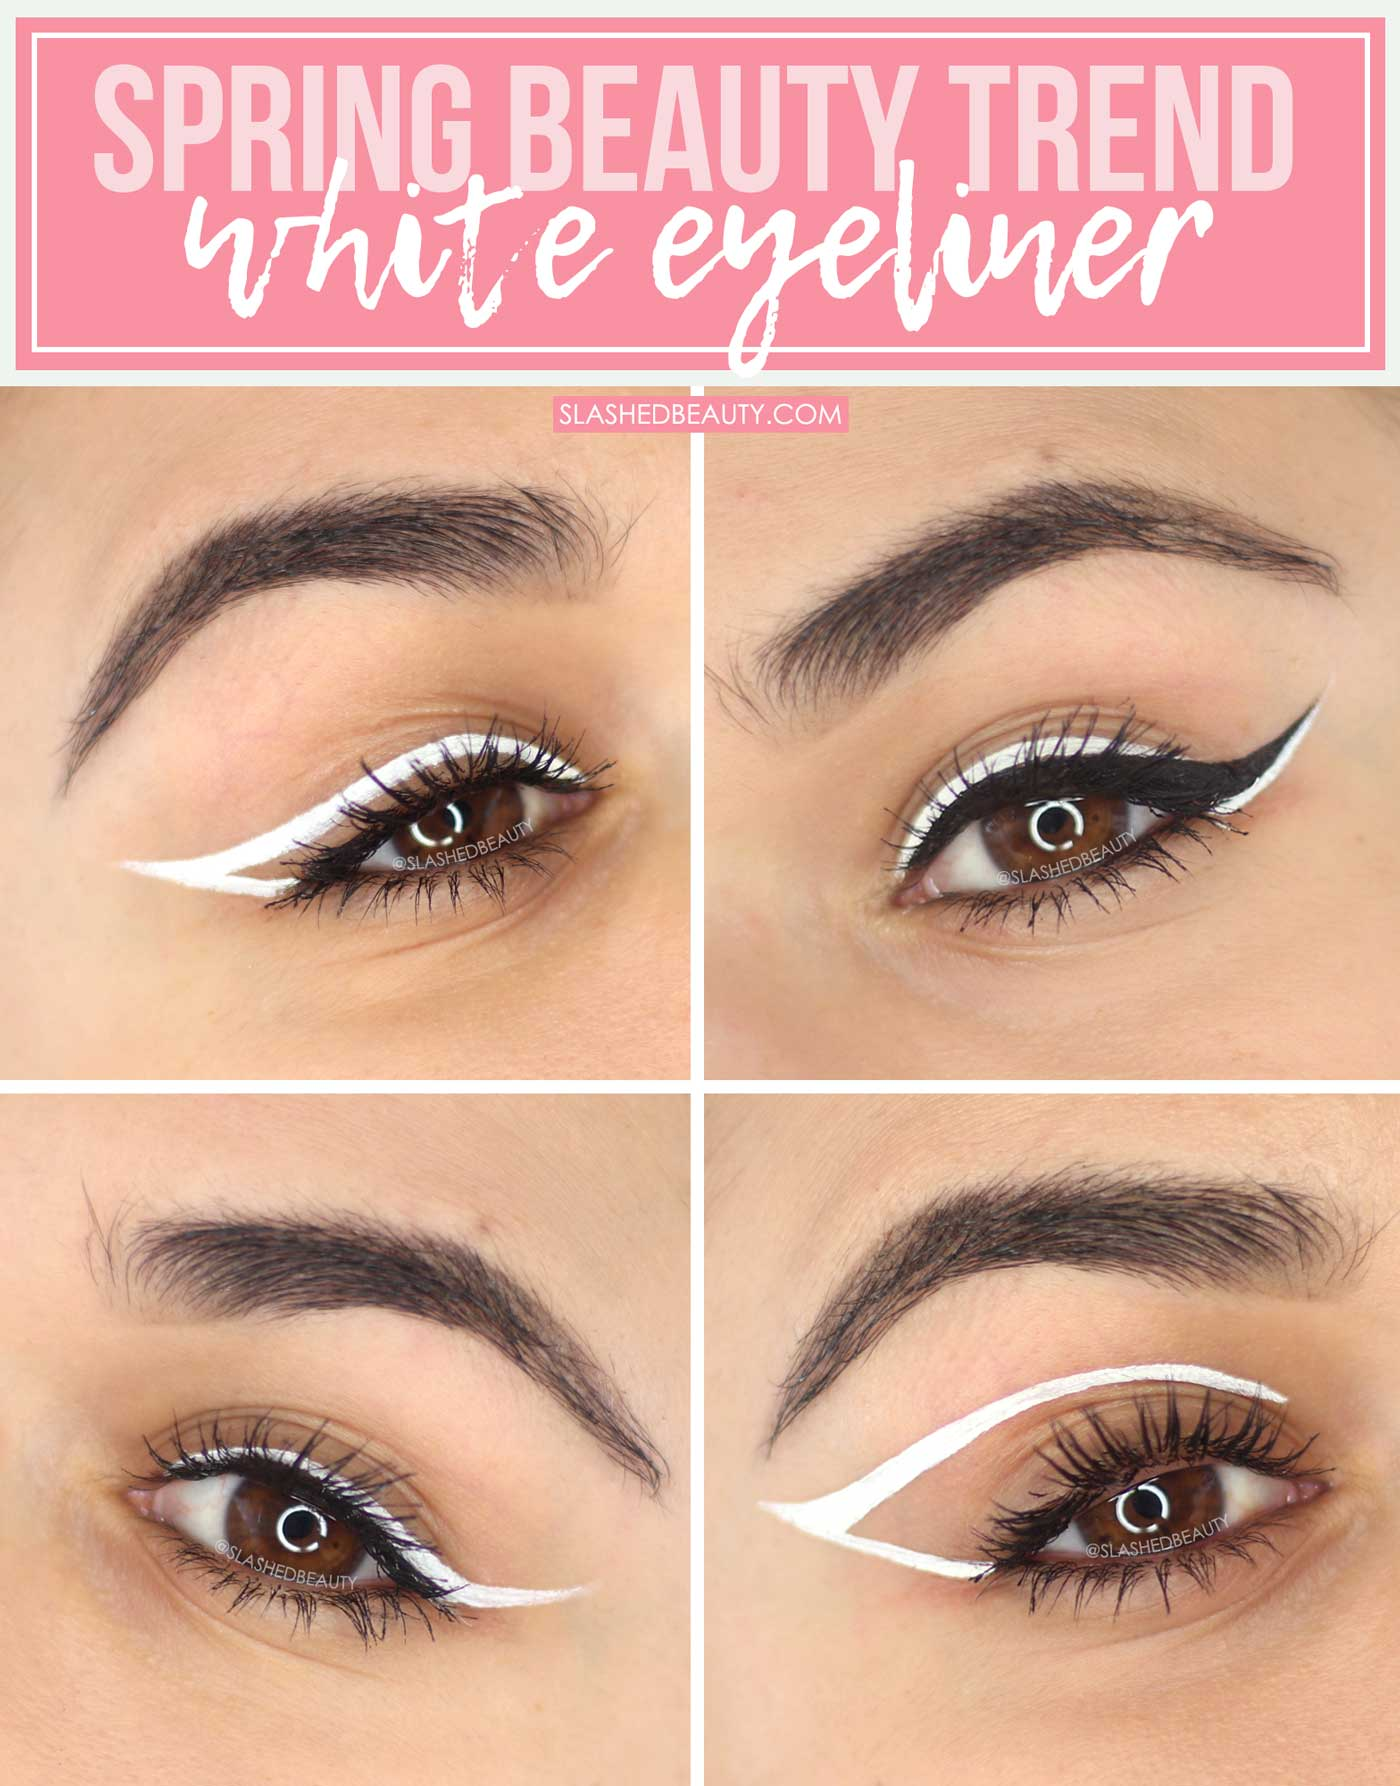 4 Ways to Wear White Eyeliner | How to Wear White Eyeliner Looks for Spring | Slashed Beauty